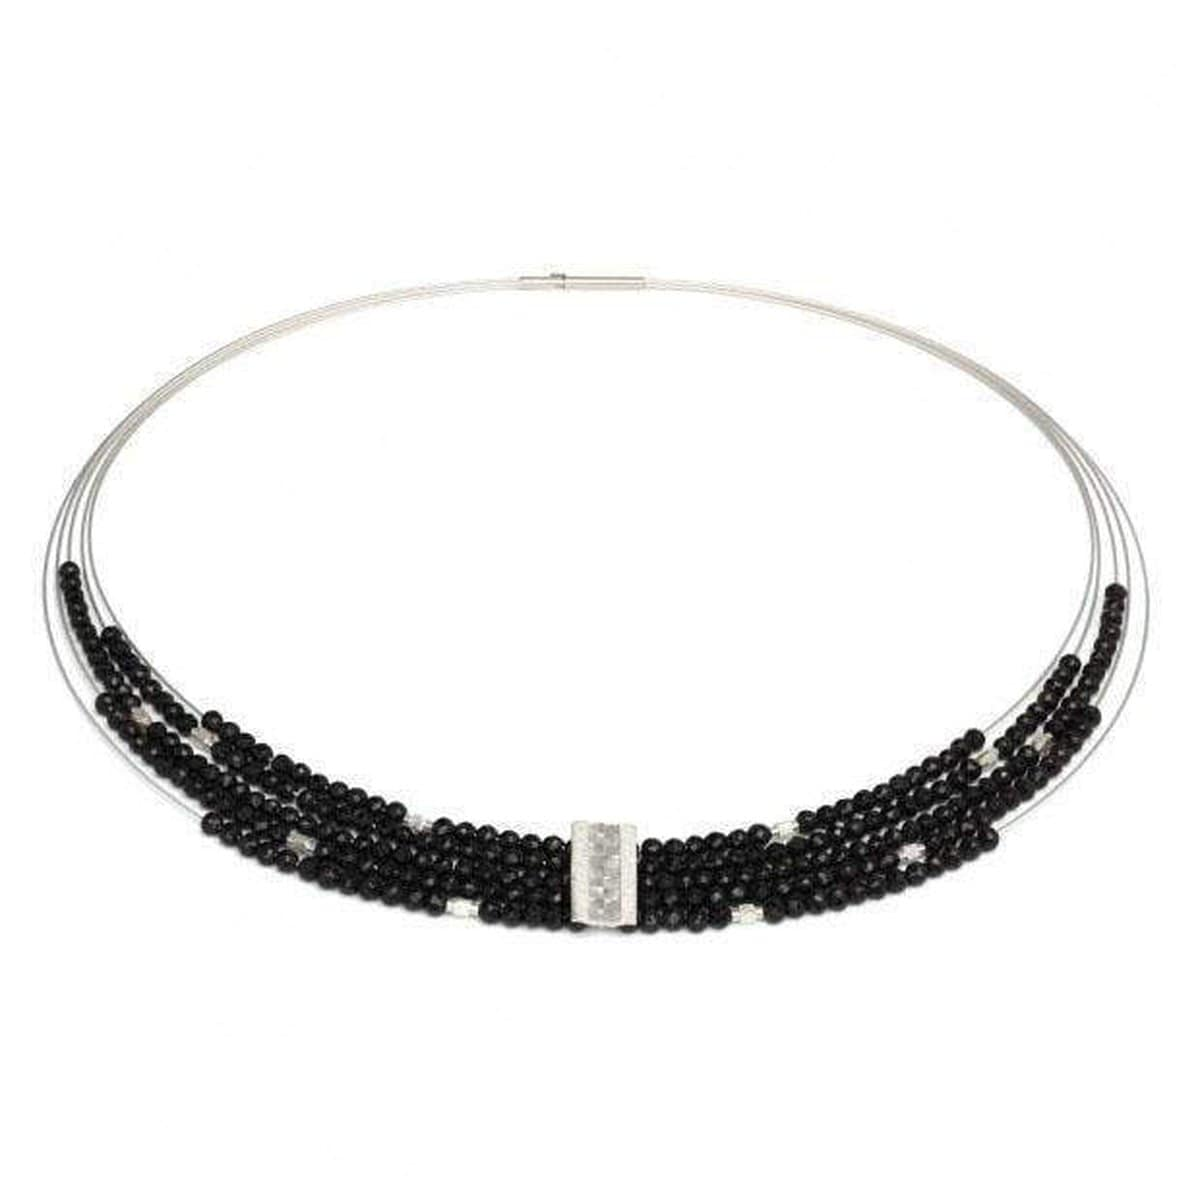 Orfea Black Spinel Necklace - 85085494-Bernd Wolf-Renee Taylor Gallery